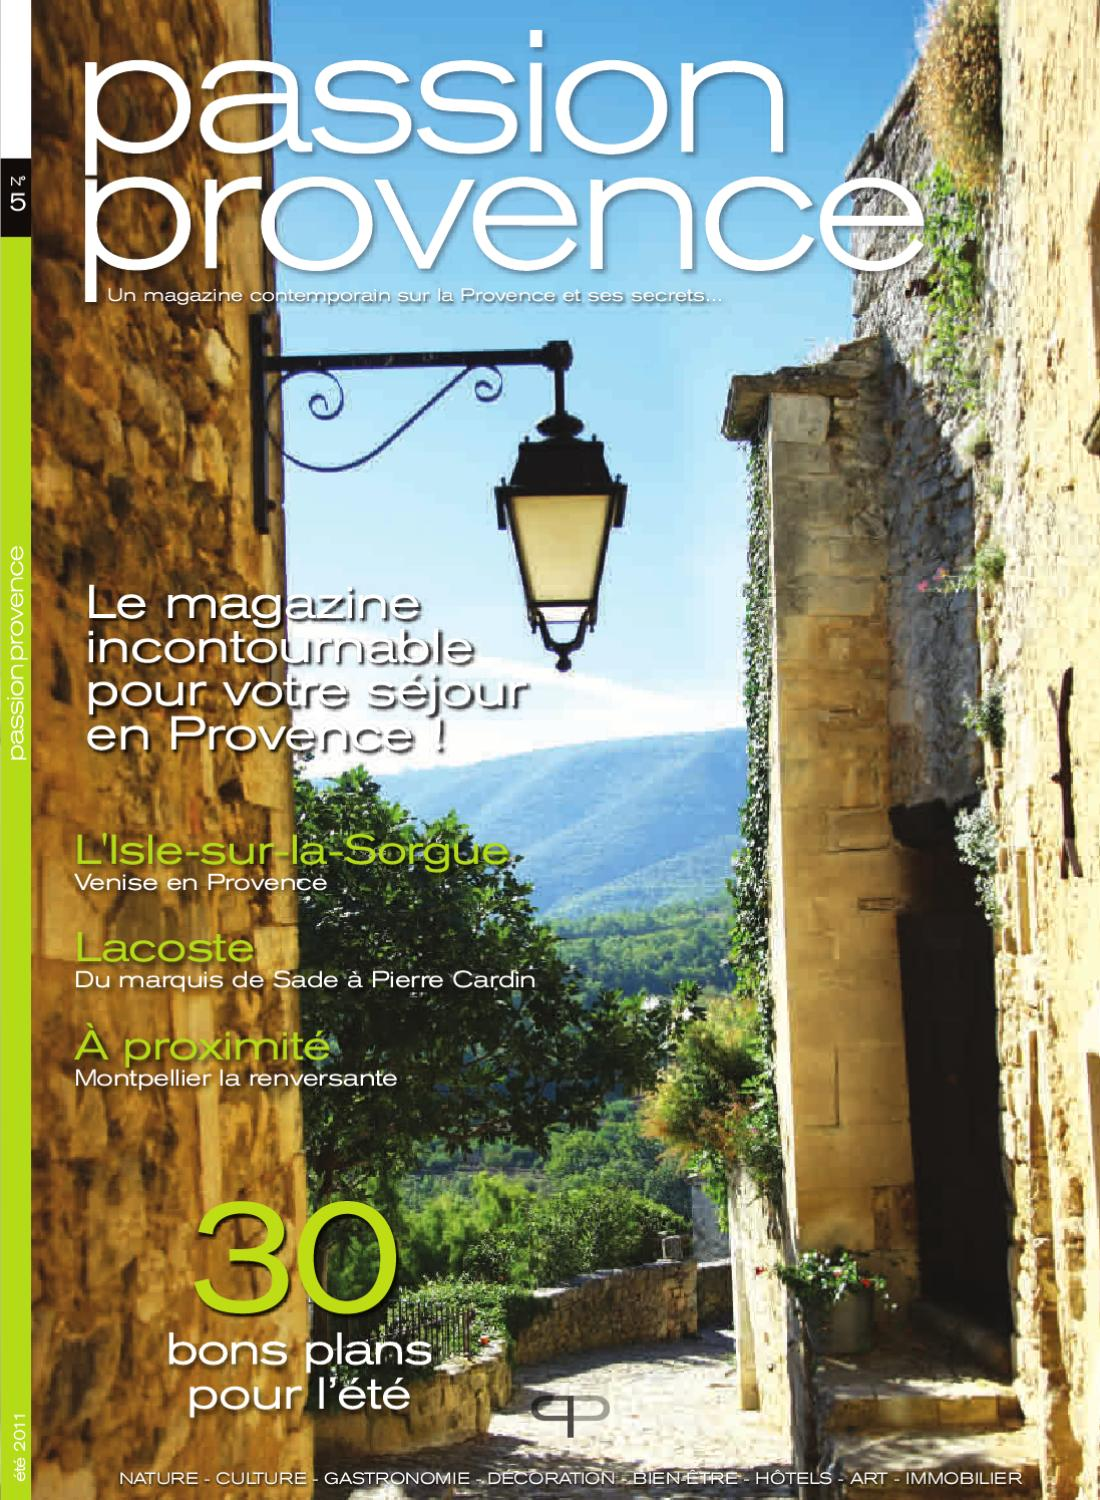 Cuisines Fabre Robion 84 Passion Provence 5 By Effective Media Issuu